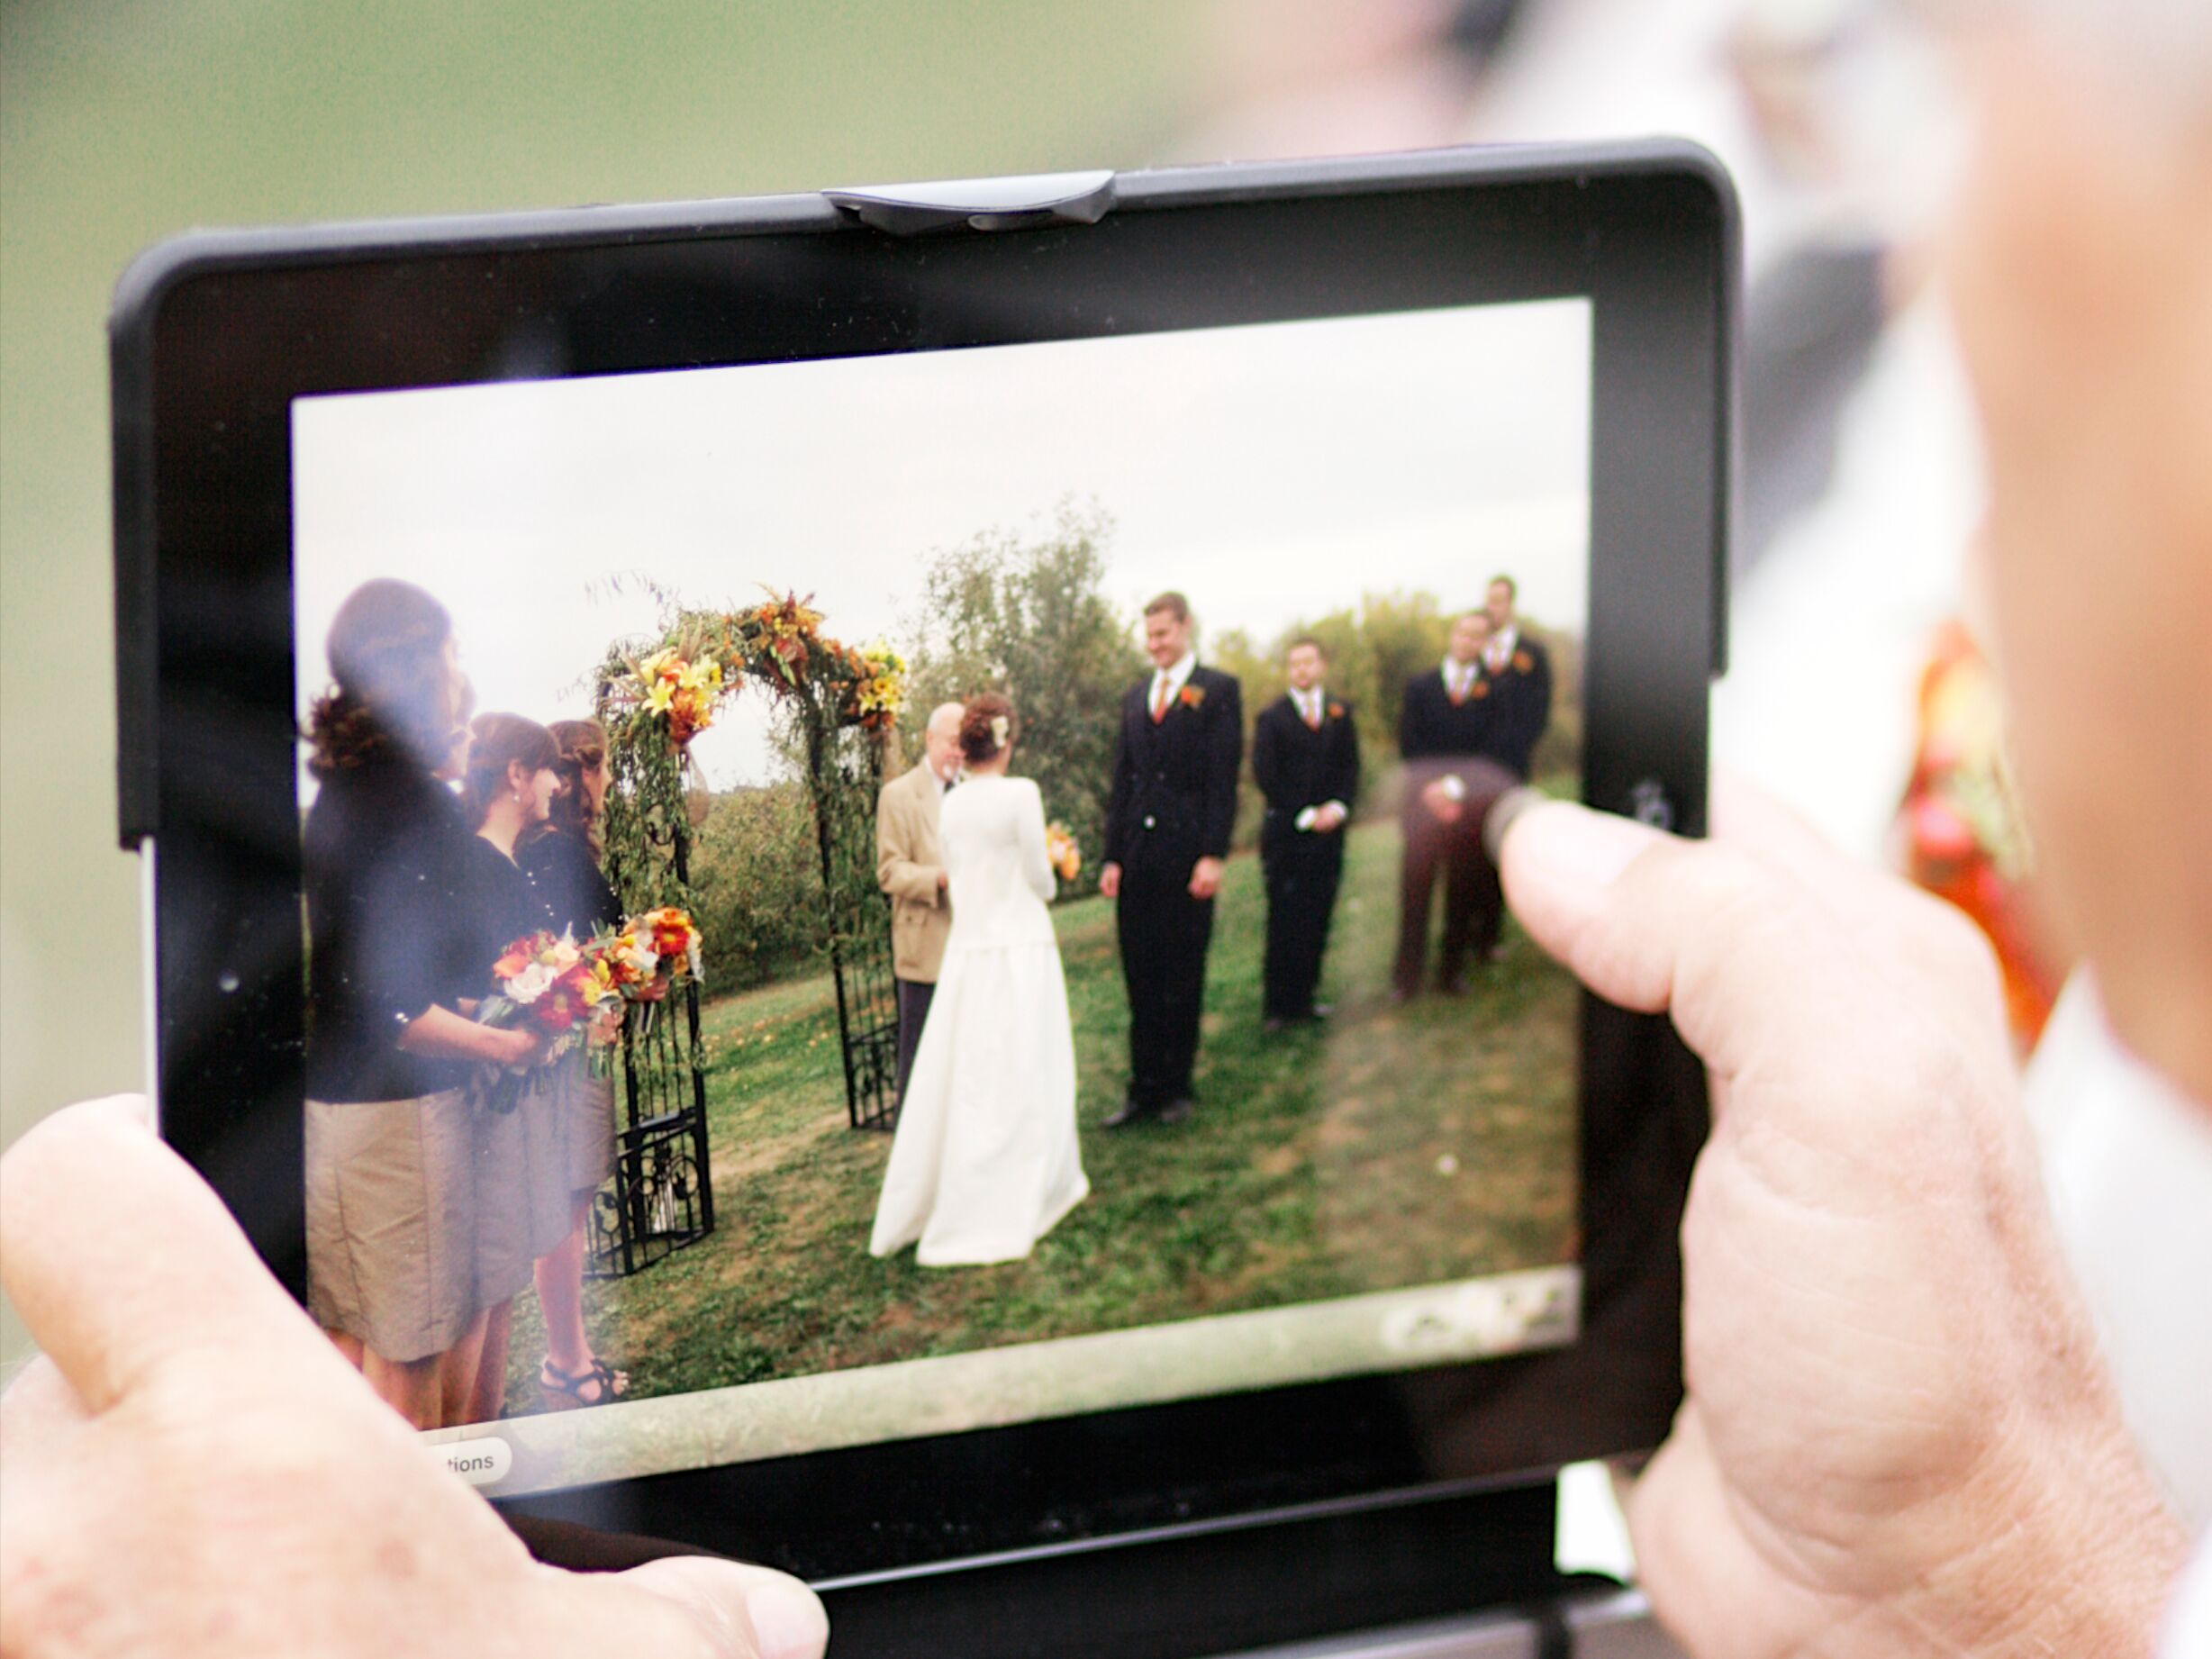 10 Wedding Technology Trends Straight from the Future